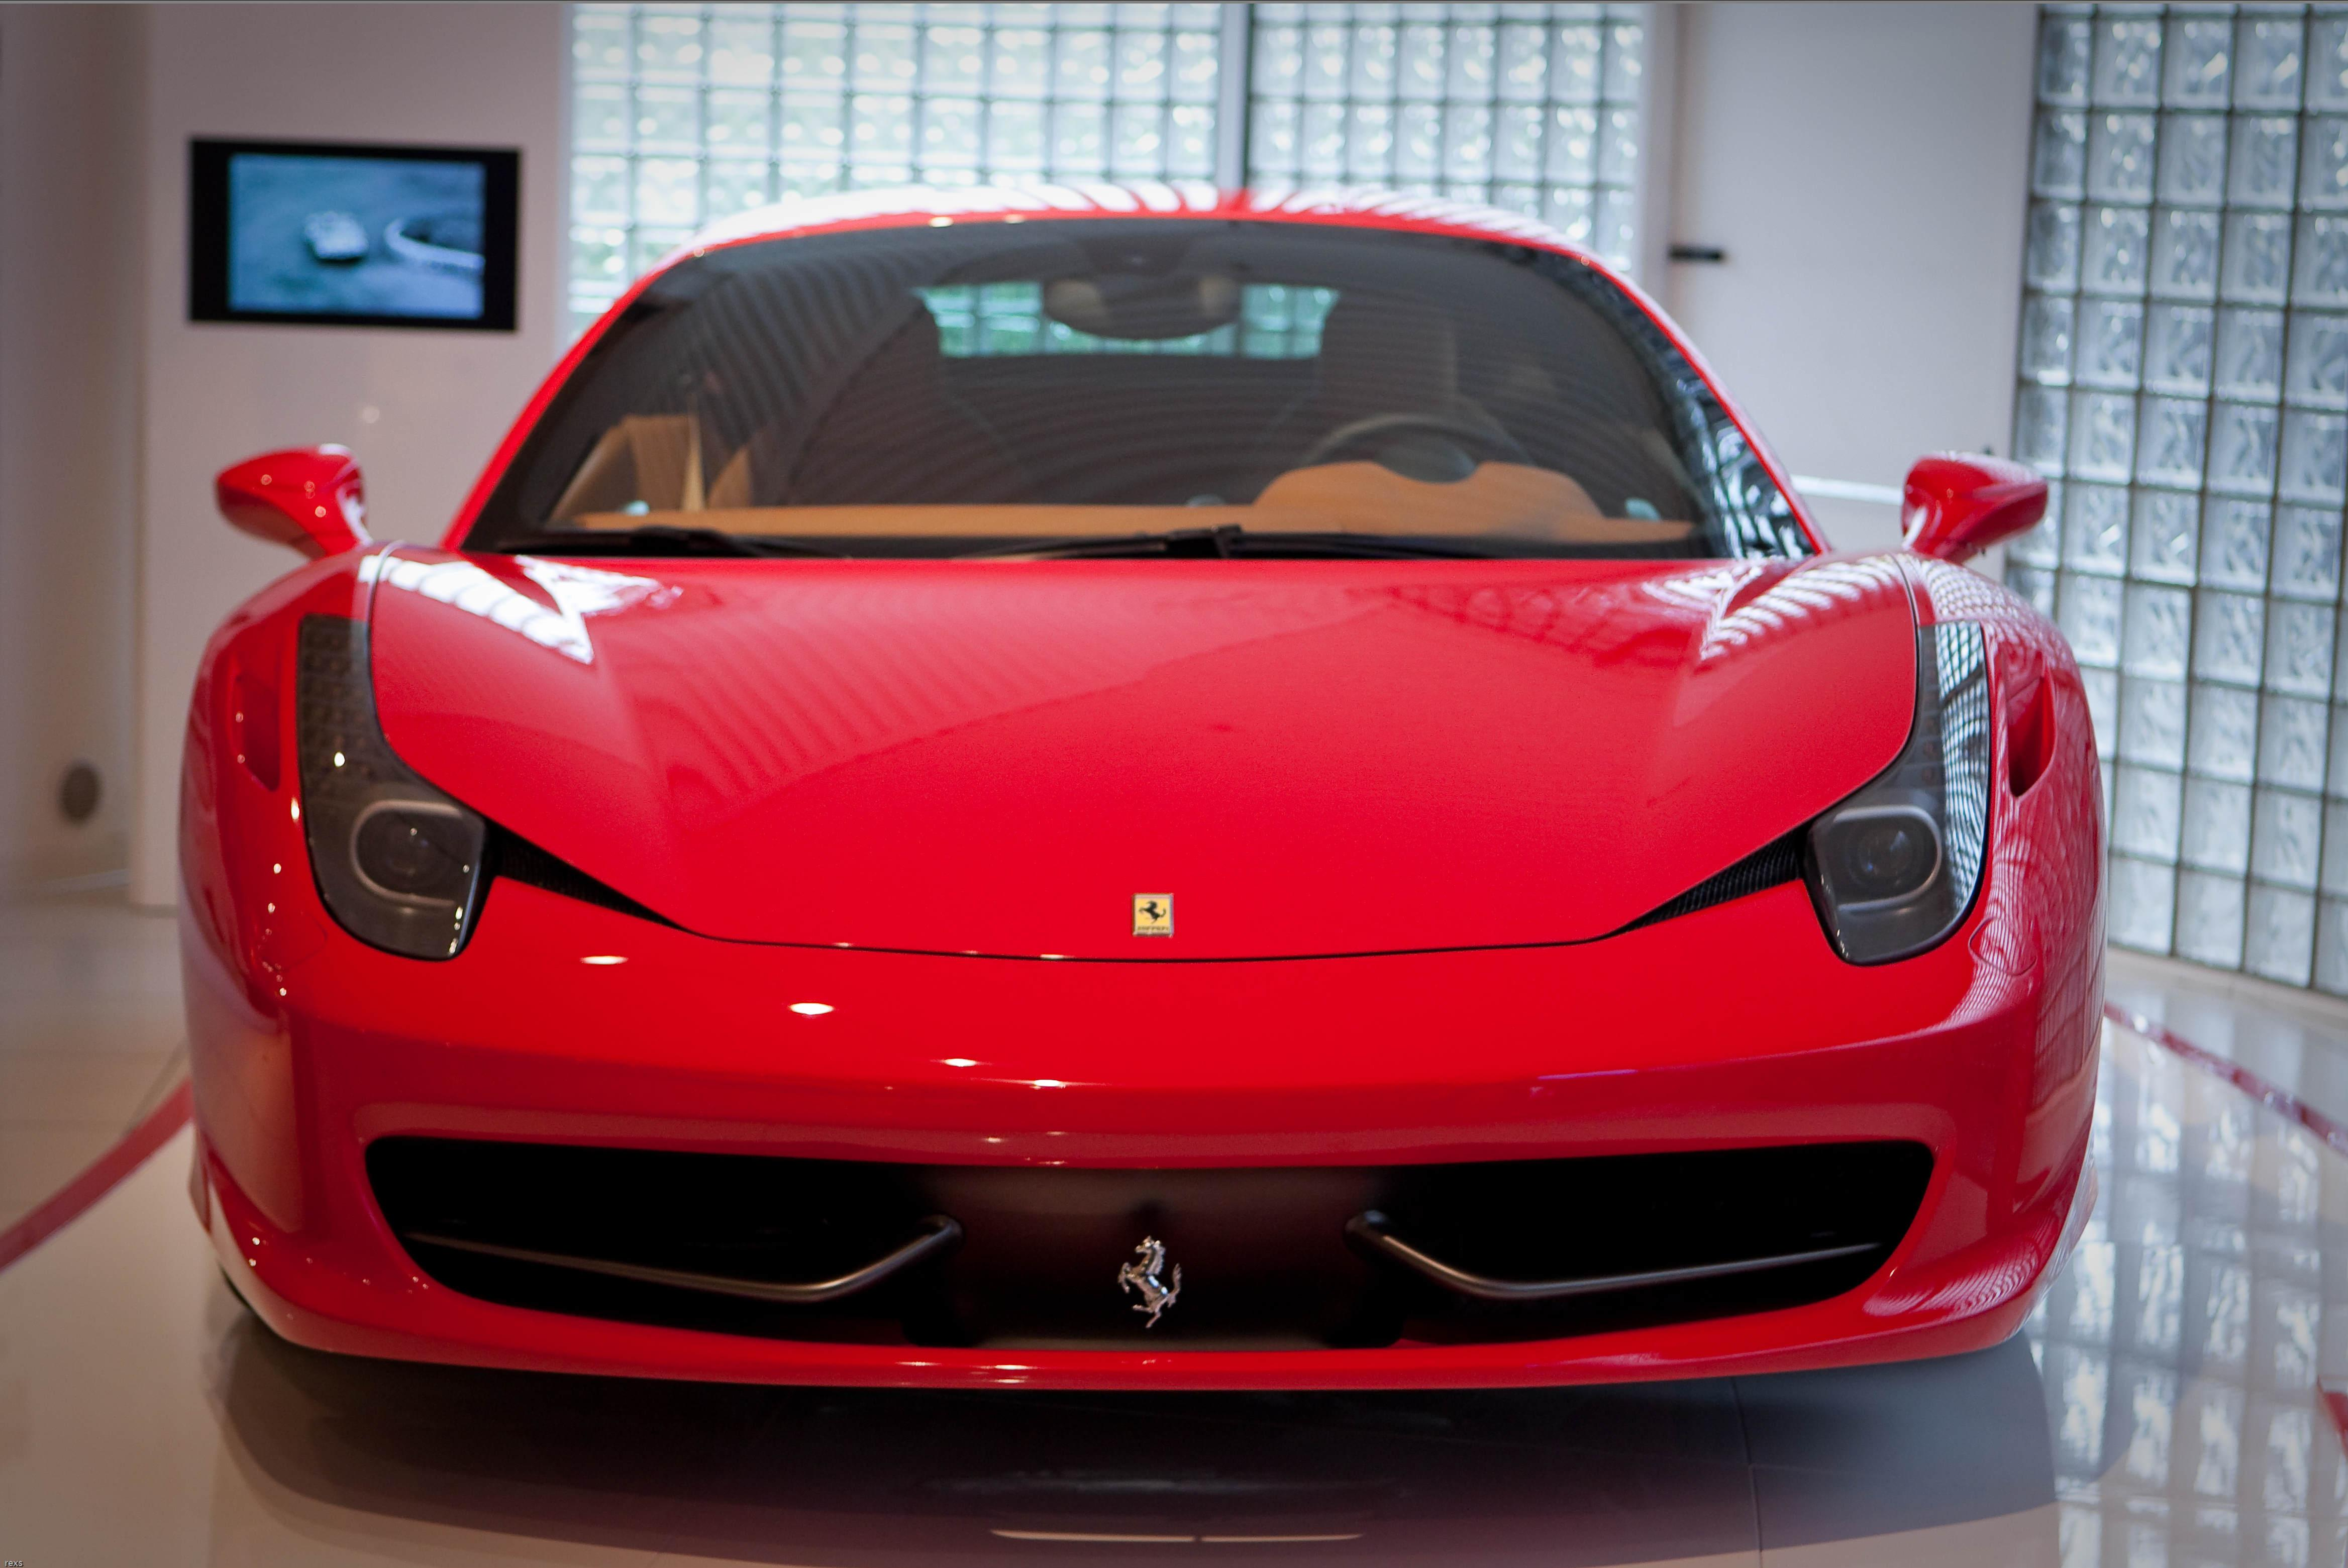 file ferrari 458 italia maranello. Black Bedroom Furniture Sets. Home Design Ideas